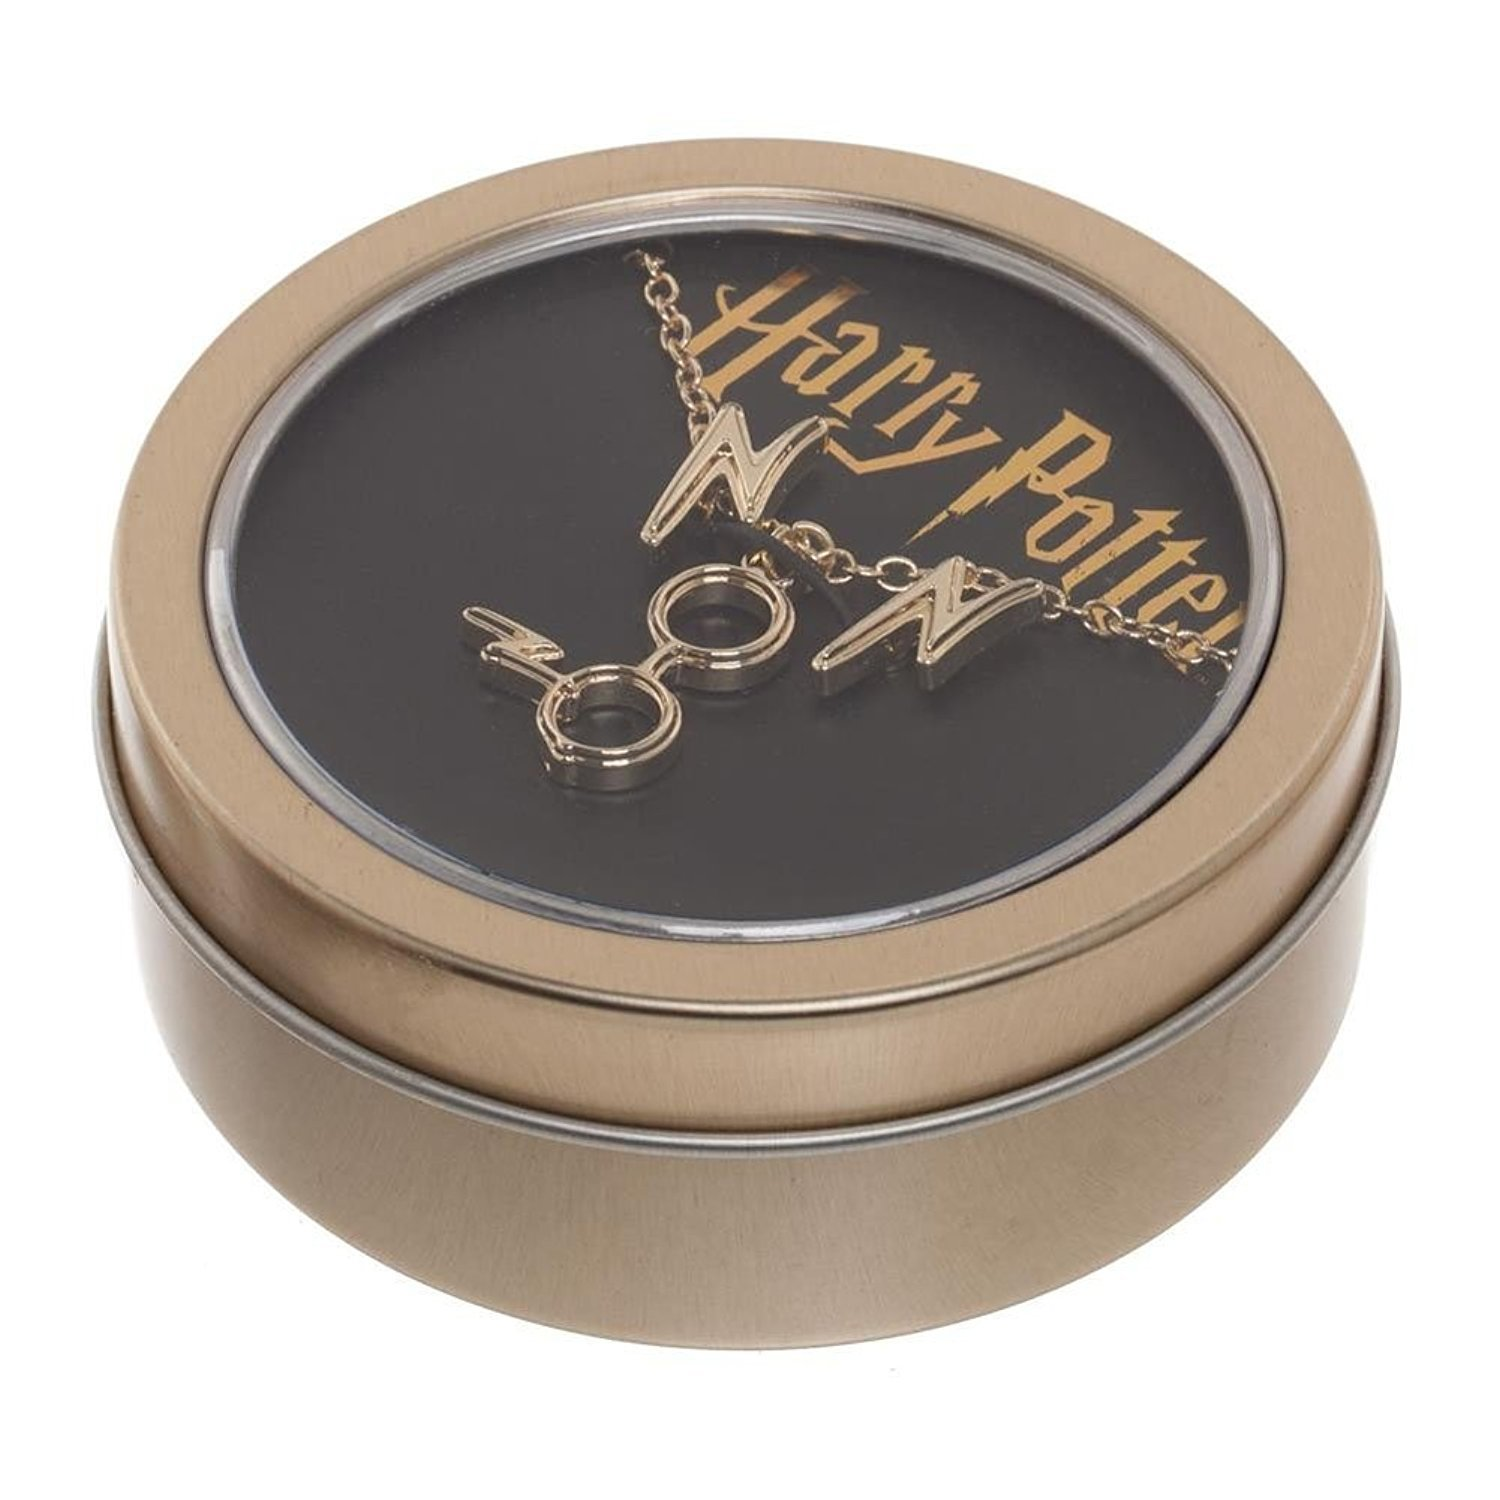 Official Licensed Harry Potter Earrings And Necklace Gift Set In Tin Sumo Dahoma Beige Js5ymihpt